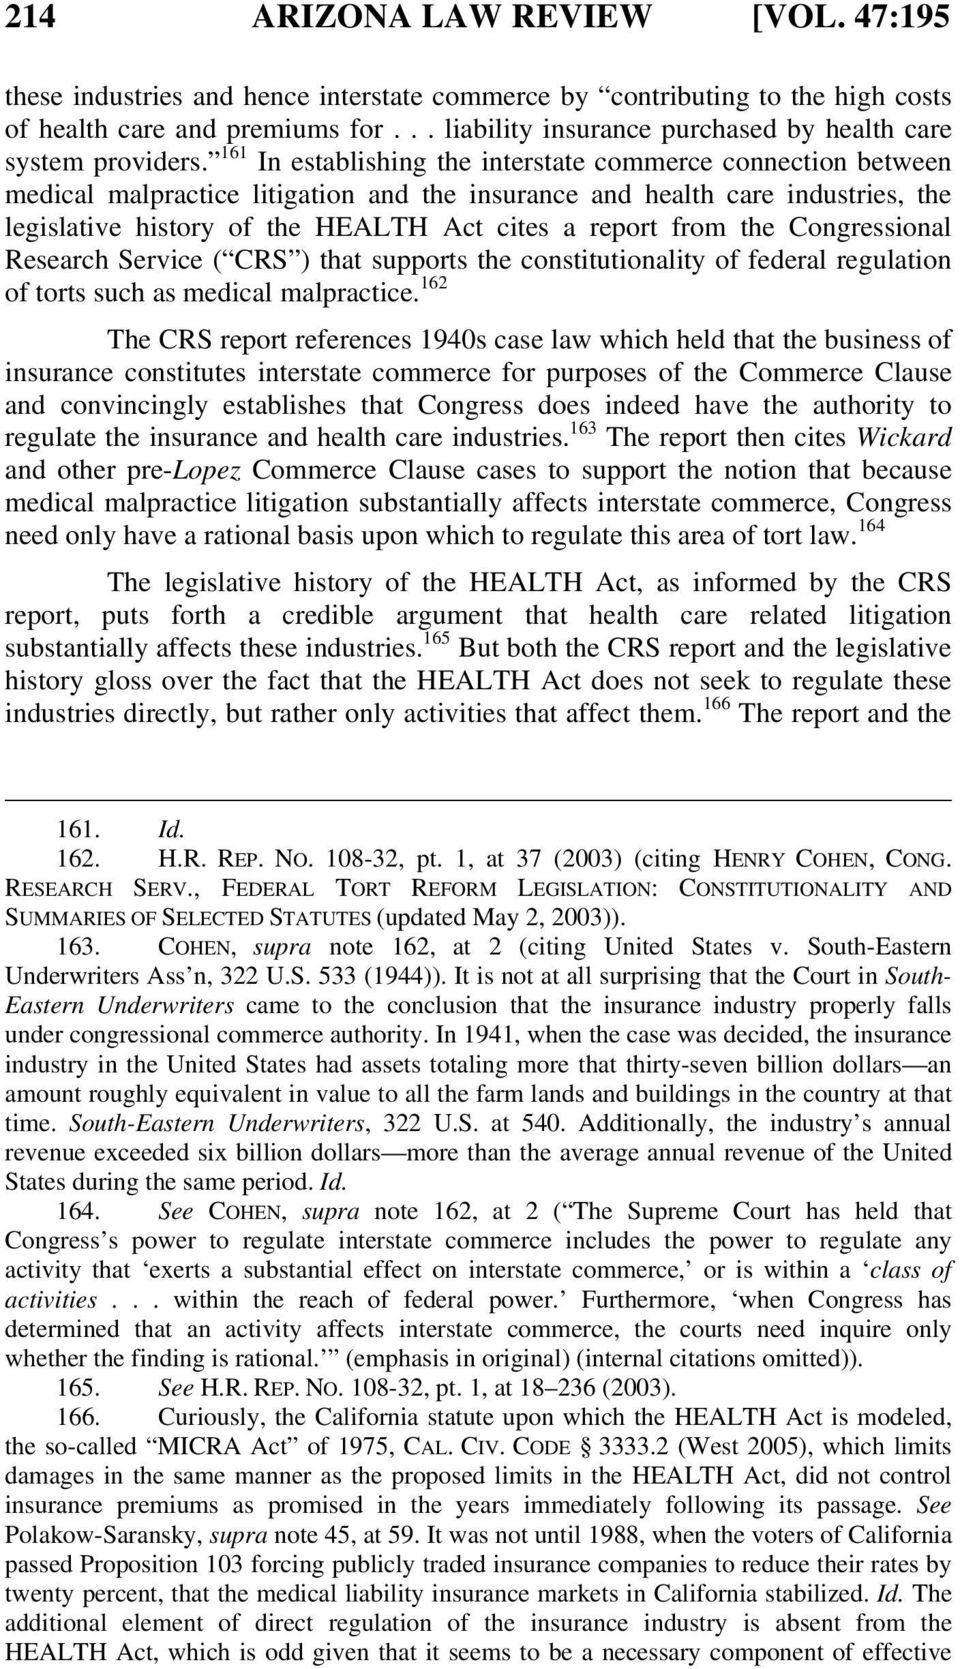 161 In establishing the interstate commerce connection between medical malpractice litigation and the insurance and health care industries, the legislative history of the HEALTH Act cites a report